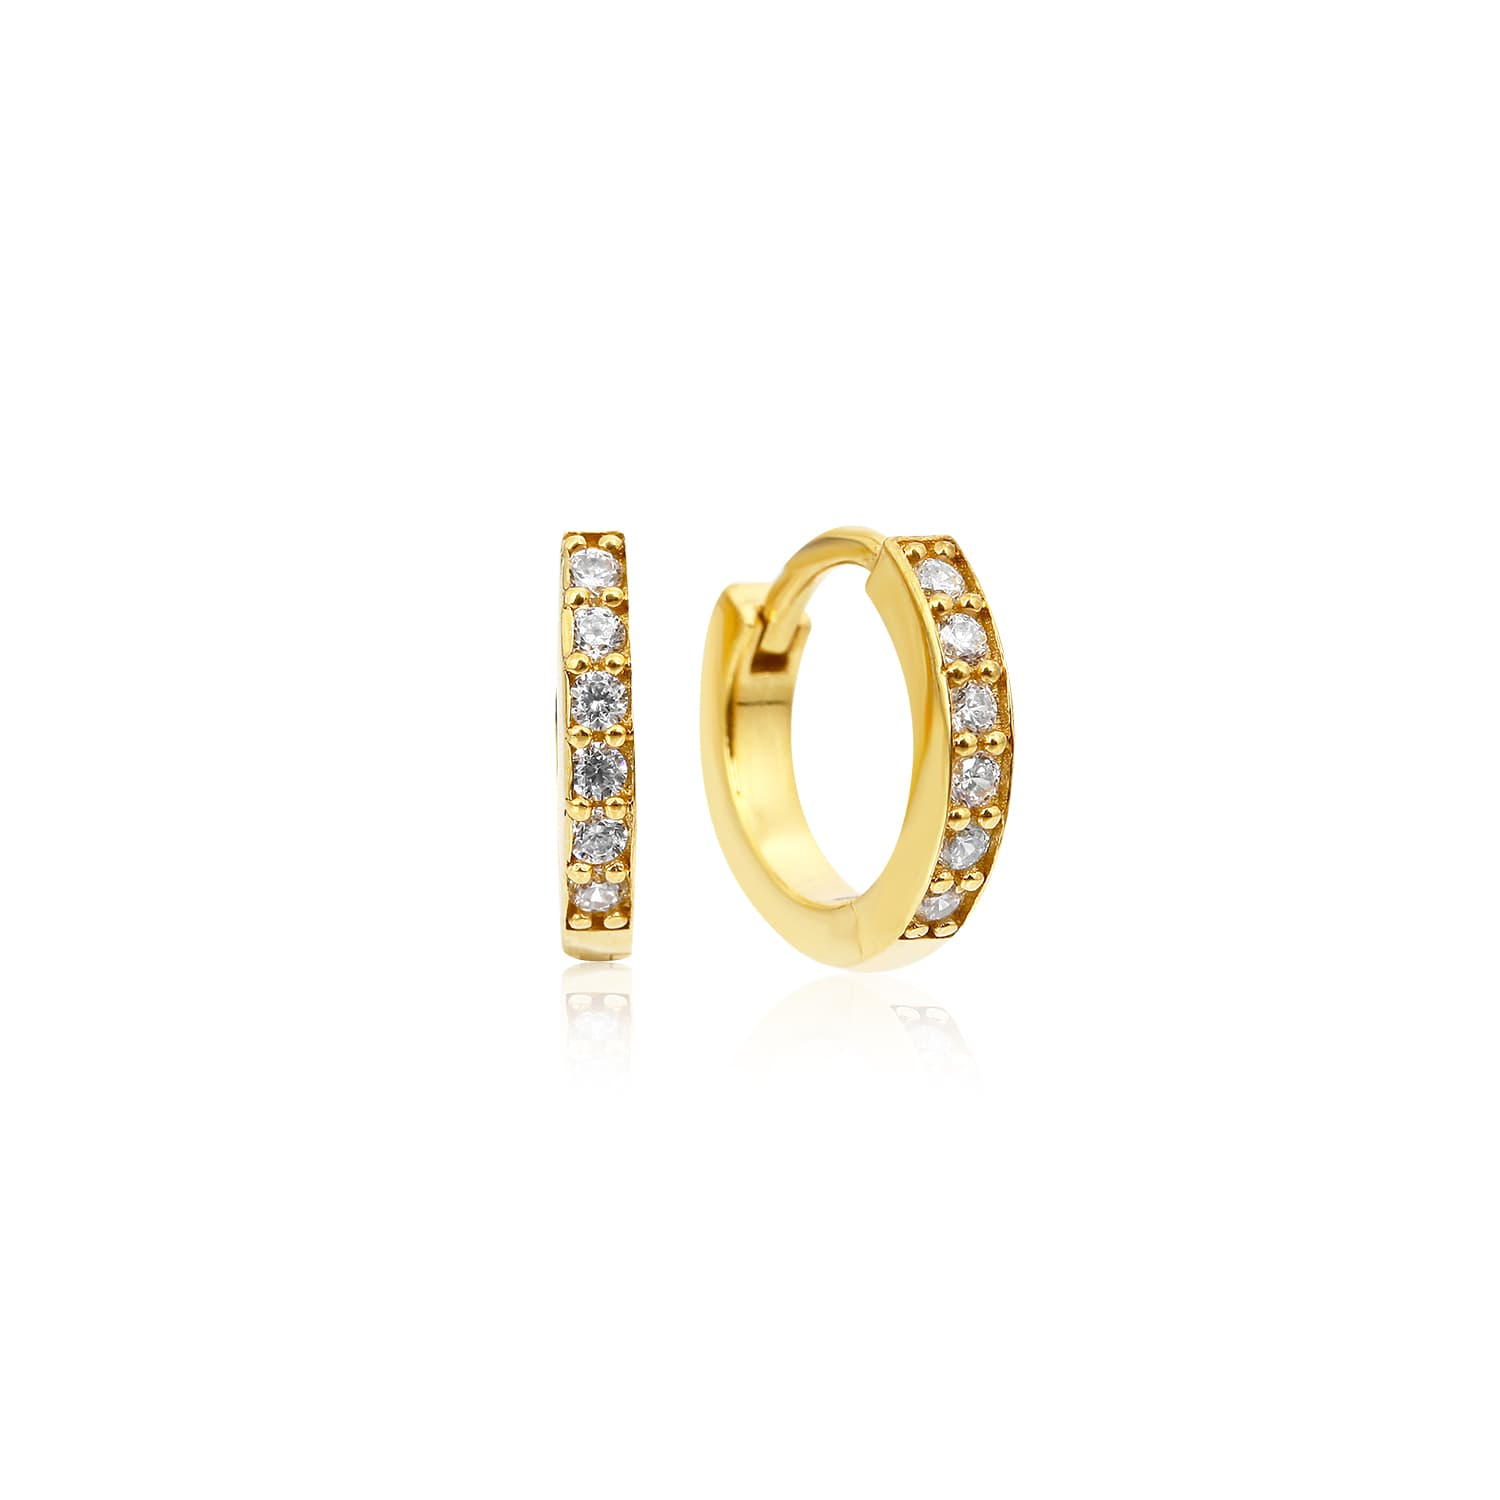 Real gold plated mini hoop earrings models